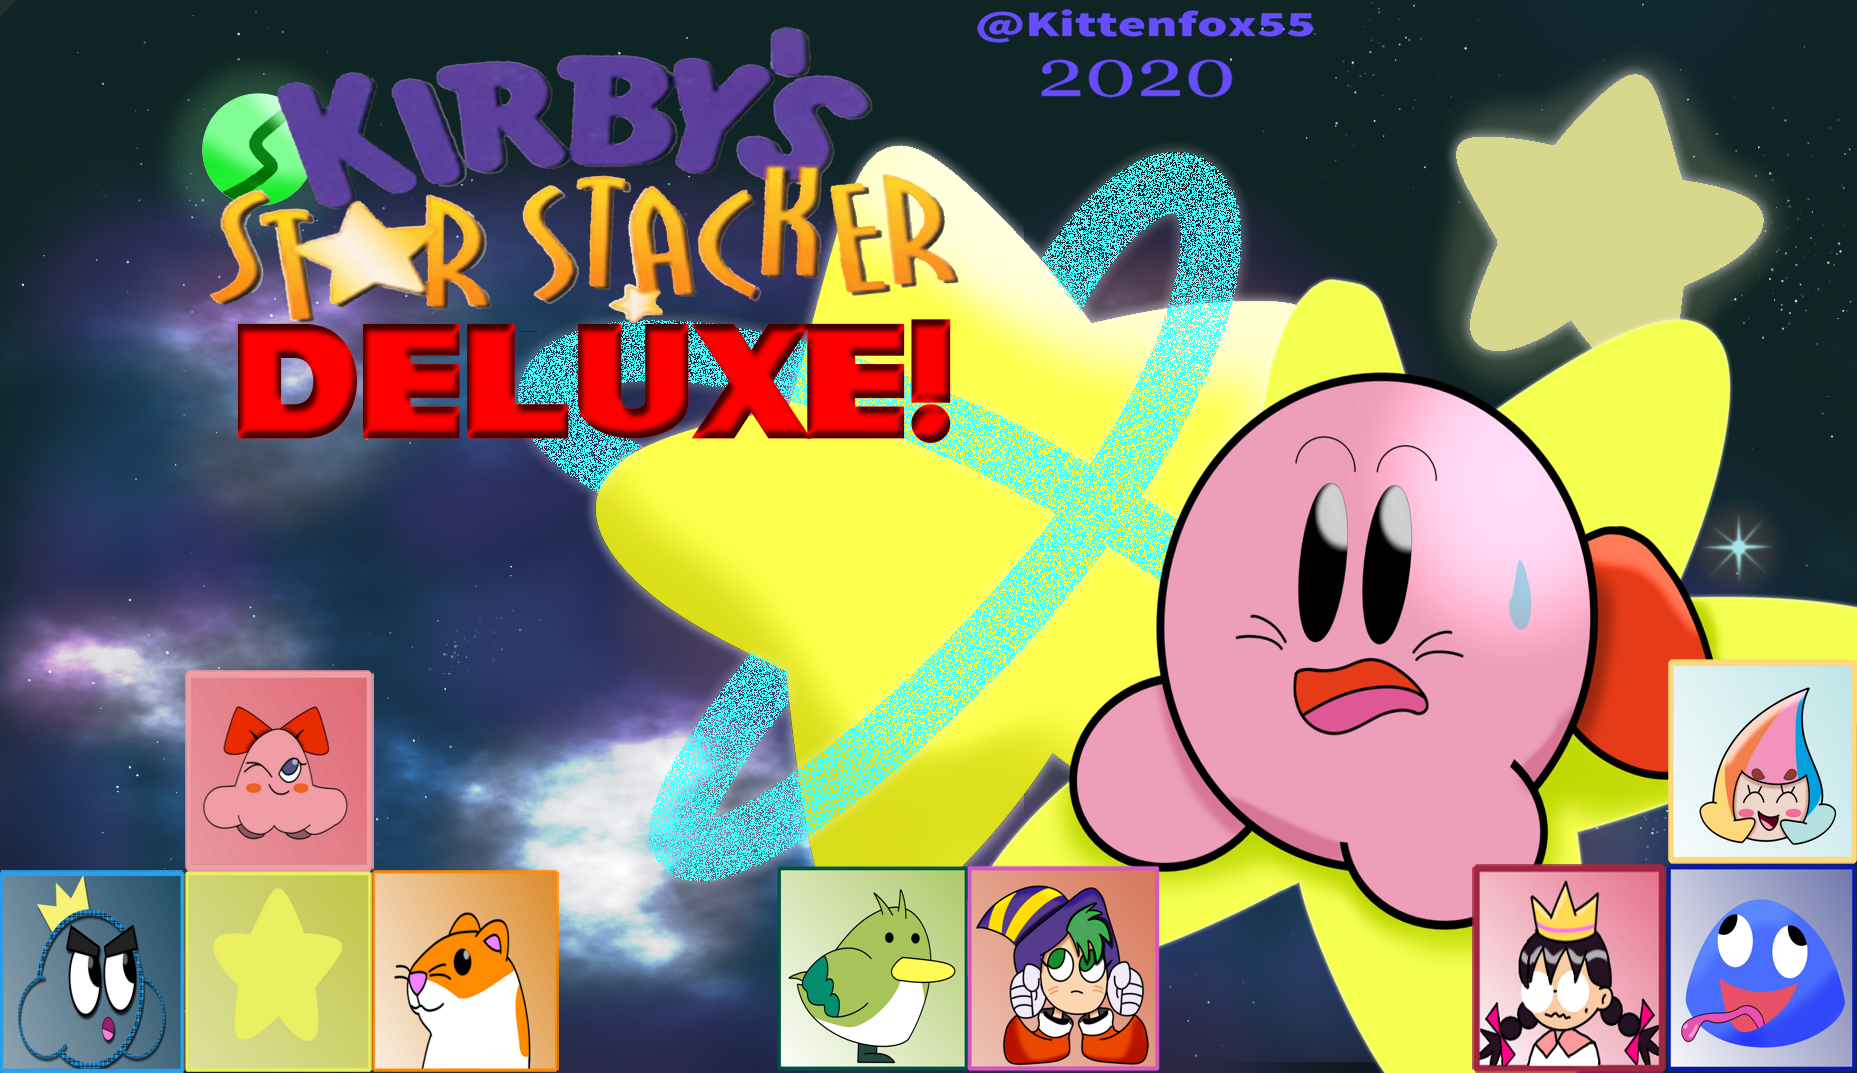 Kirby's Star Stacker Deluxe